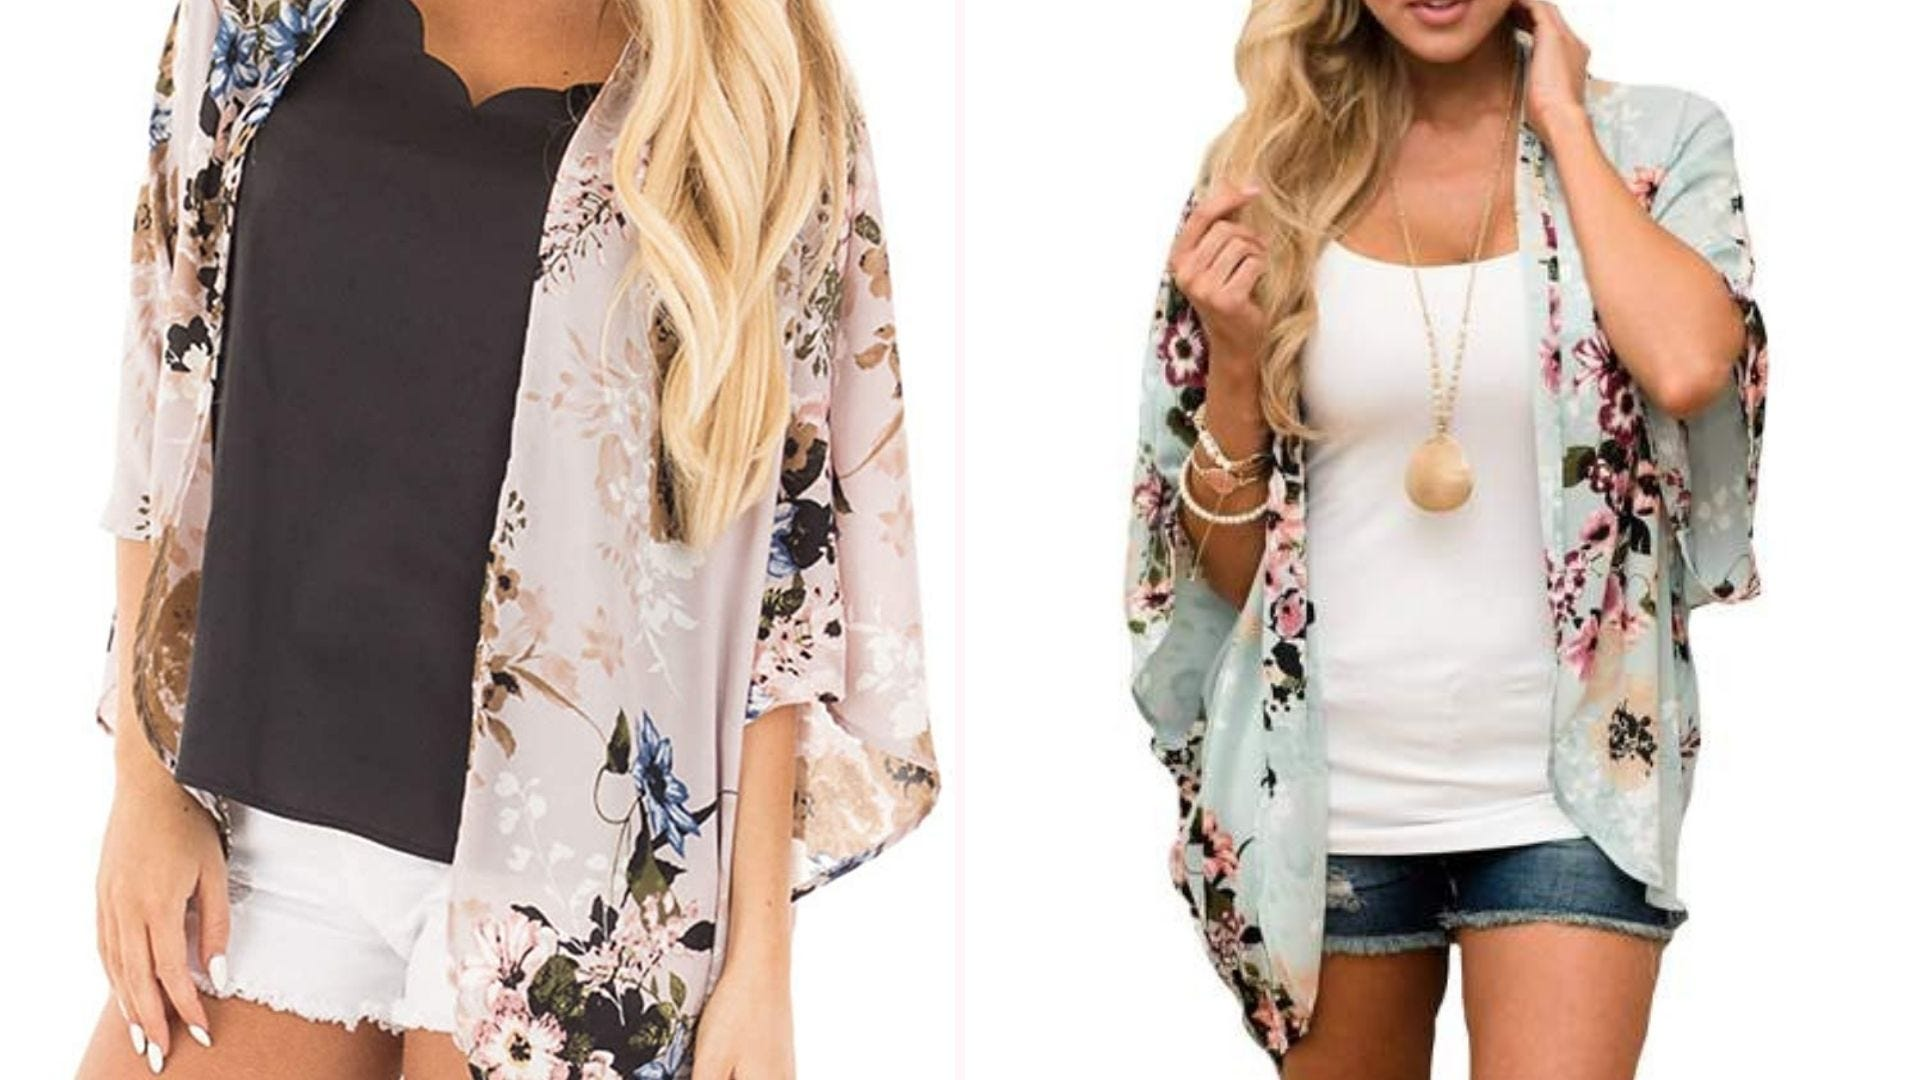 Two shoulder-down images of women wearing floral kimono-style coverups over T-shirts and shorts